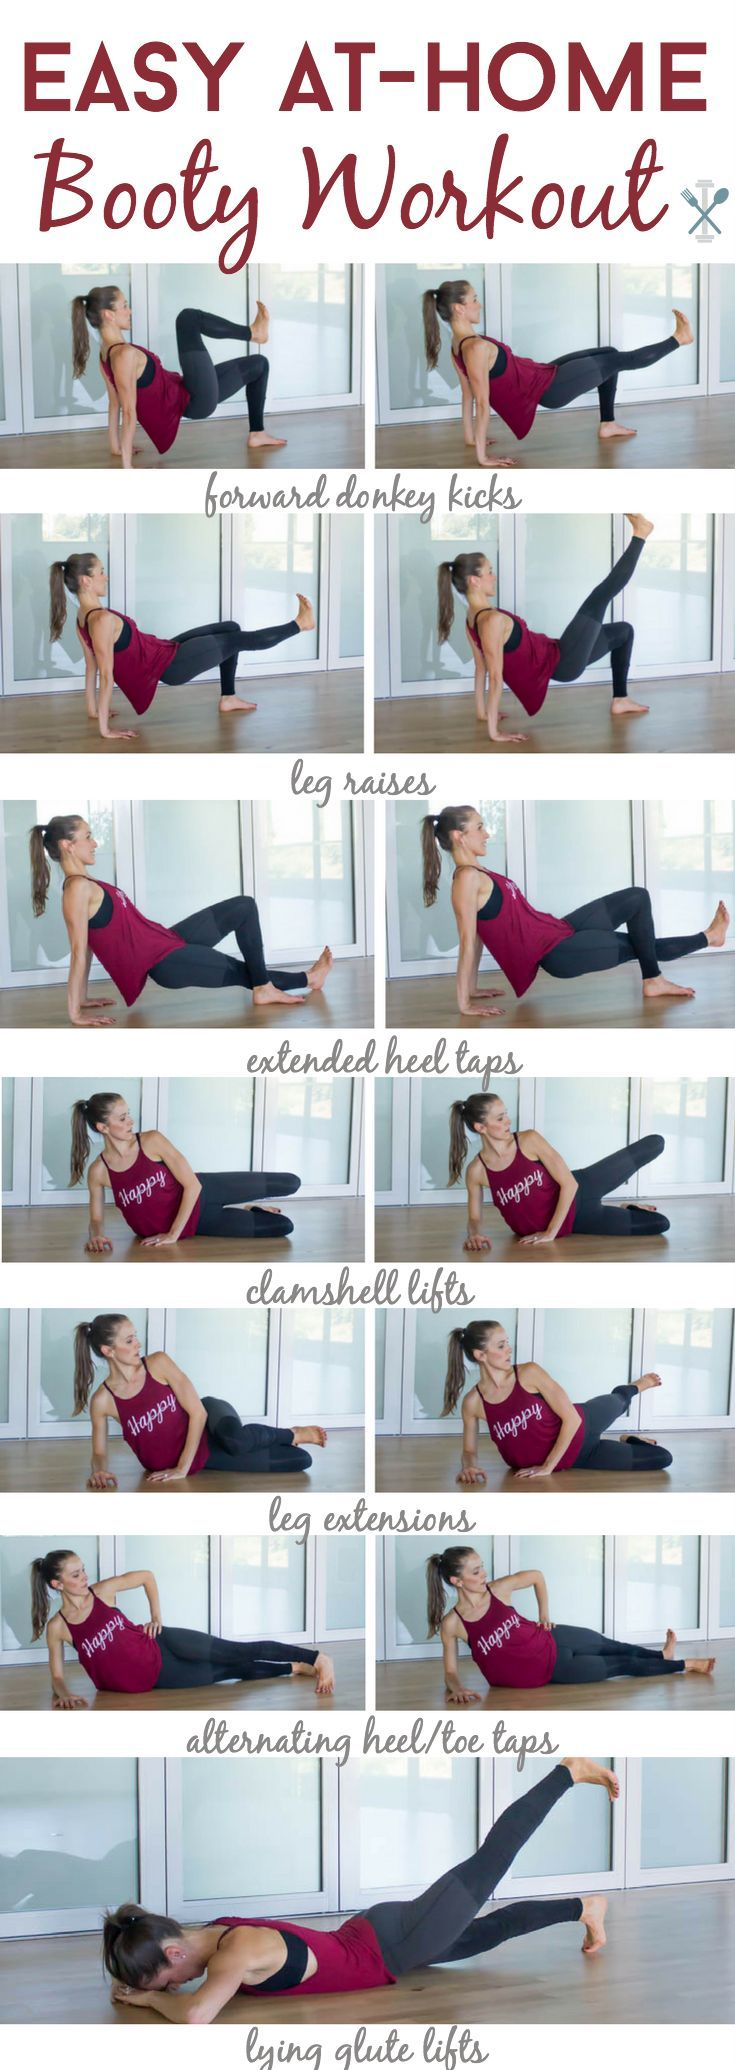 Getting a perky booty doesn't have to be hard with this easy, at-home booty workout. No squats and no gym required! A ton of creative barre-inspired moves you can to any where, any time